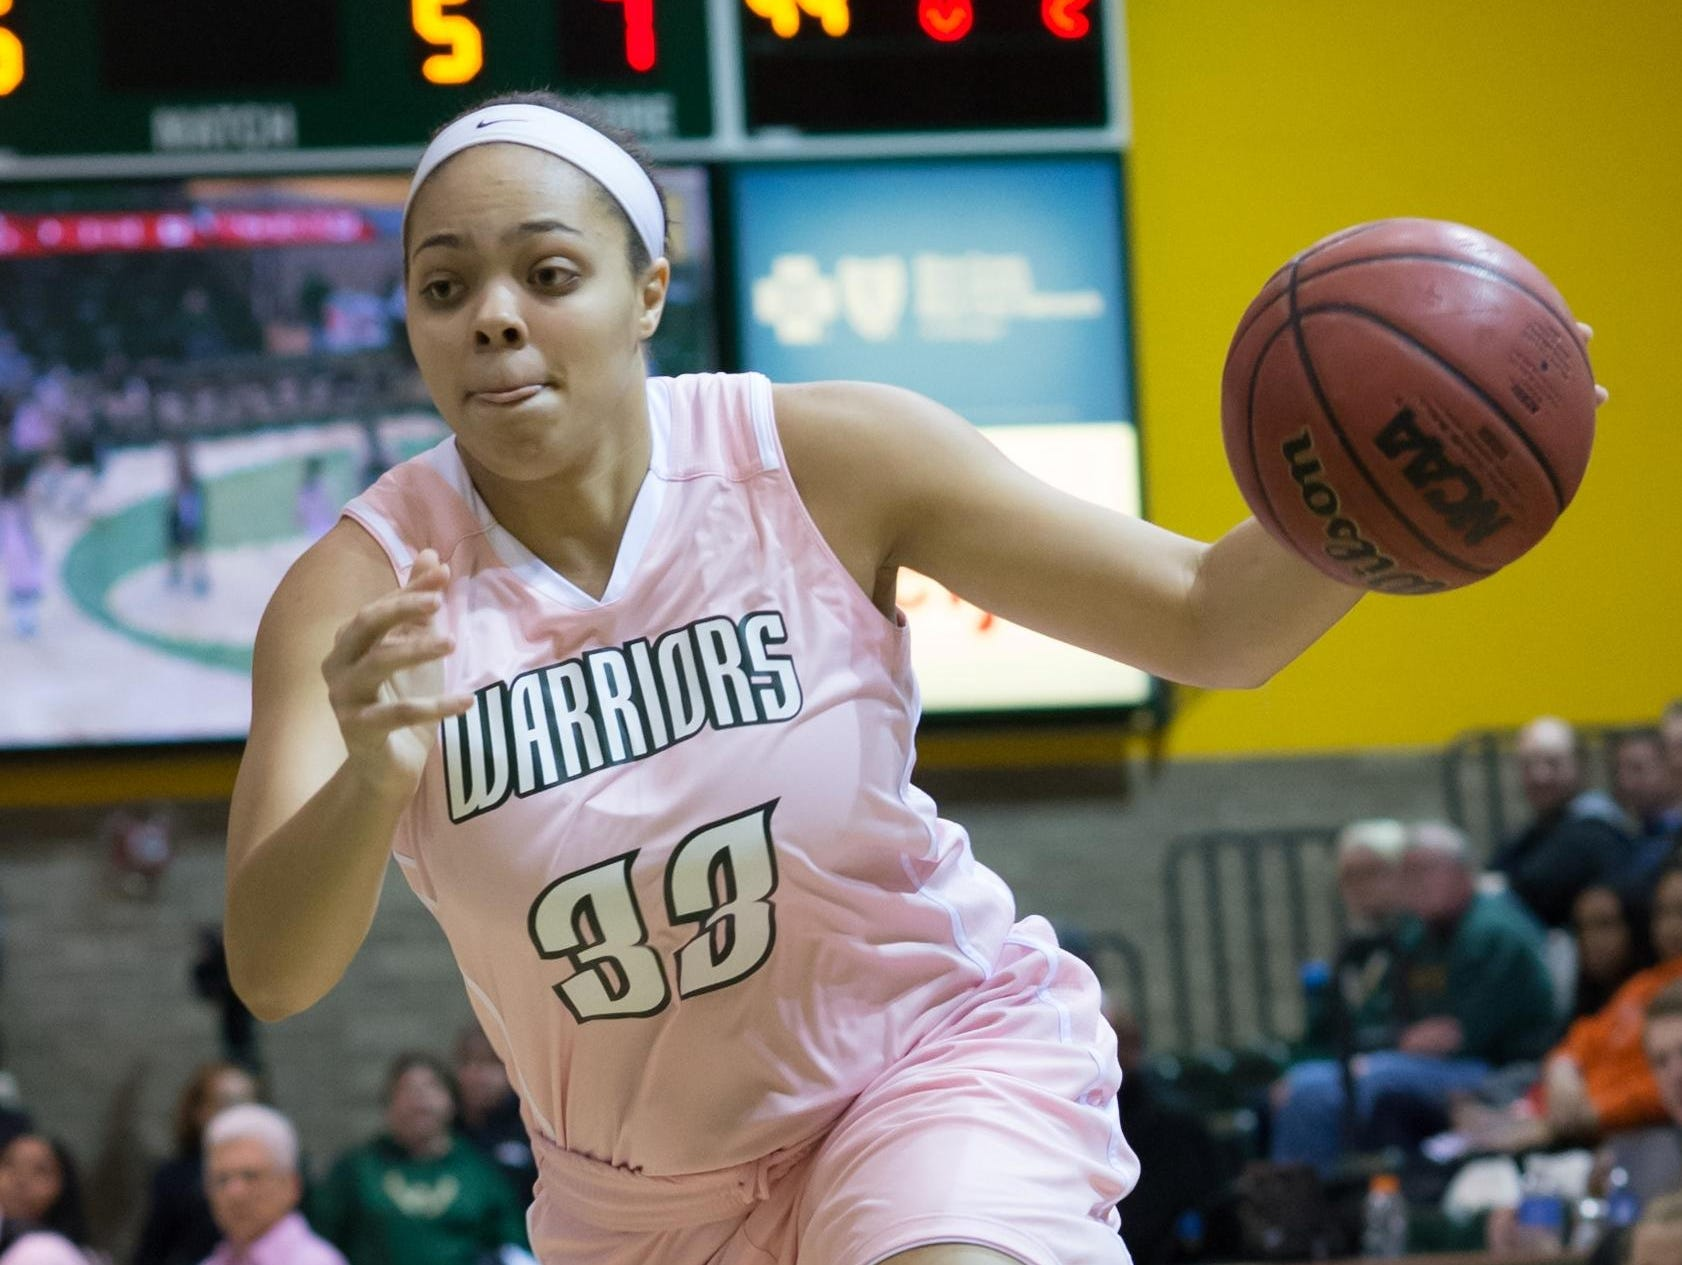 Shannon Wilson, who played prep basketball in Bloomfield Hills, has worked hard to become a starting guard for the Wayne State University women's basketball team this season.